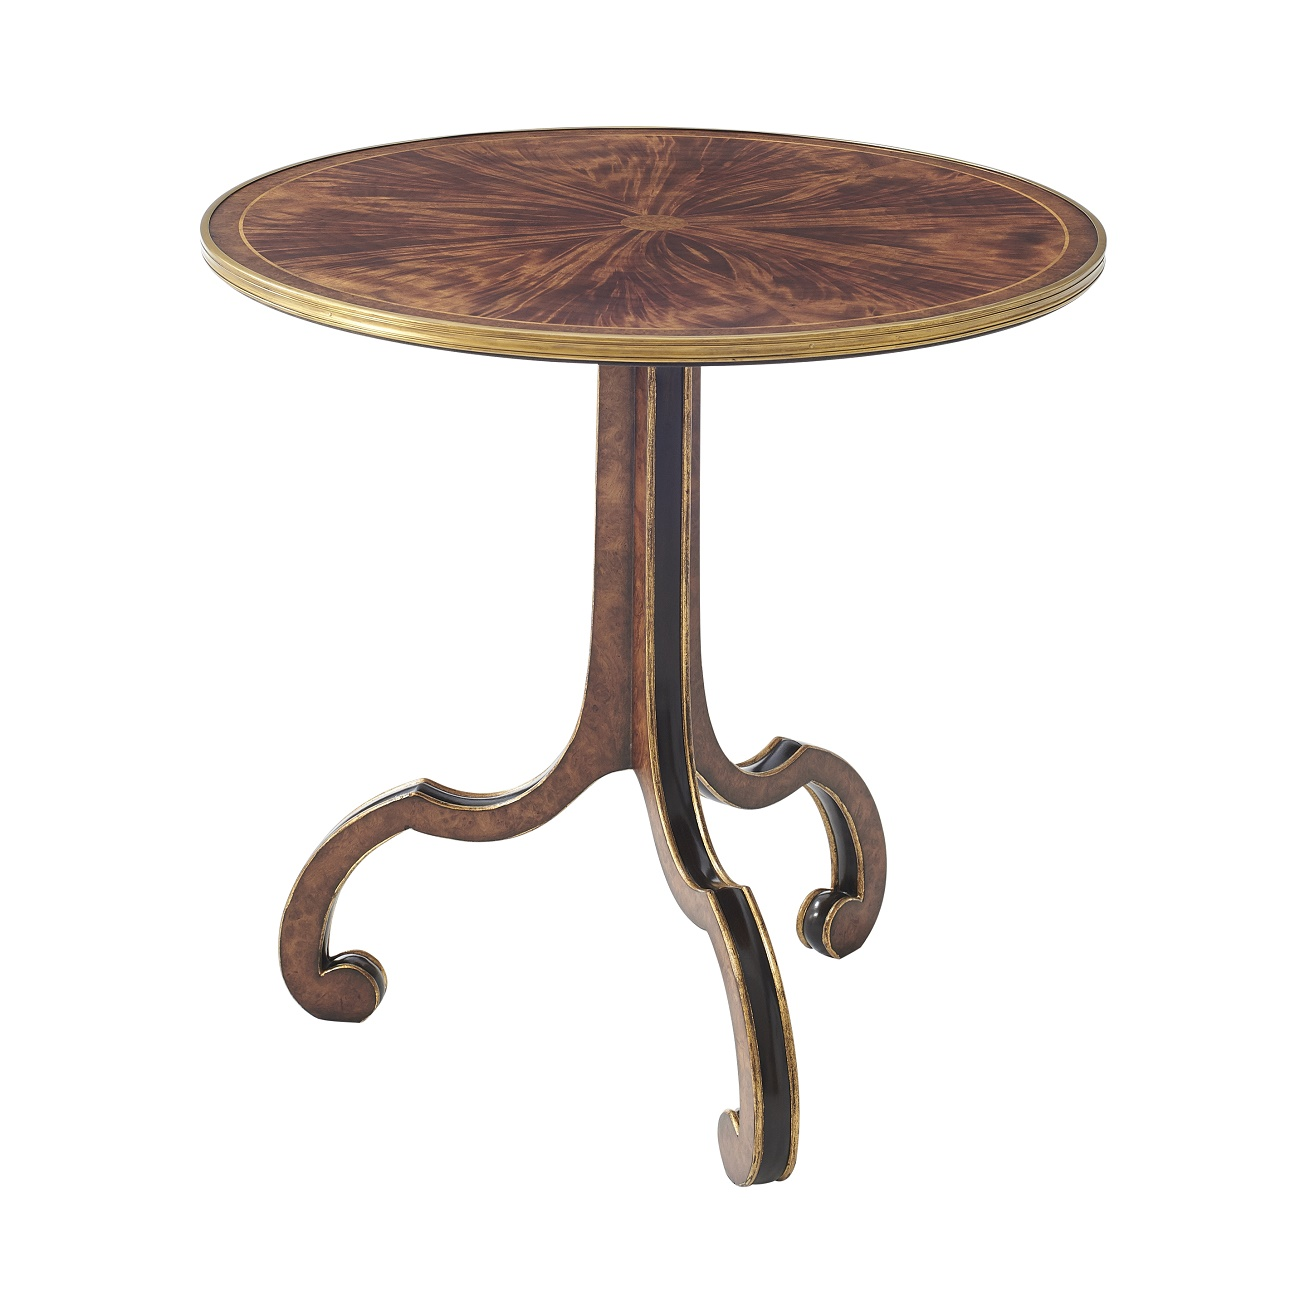 5005 552 Inward Looking Accent Table theodore alexander